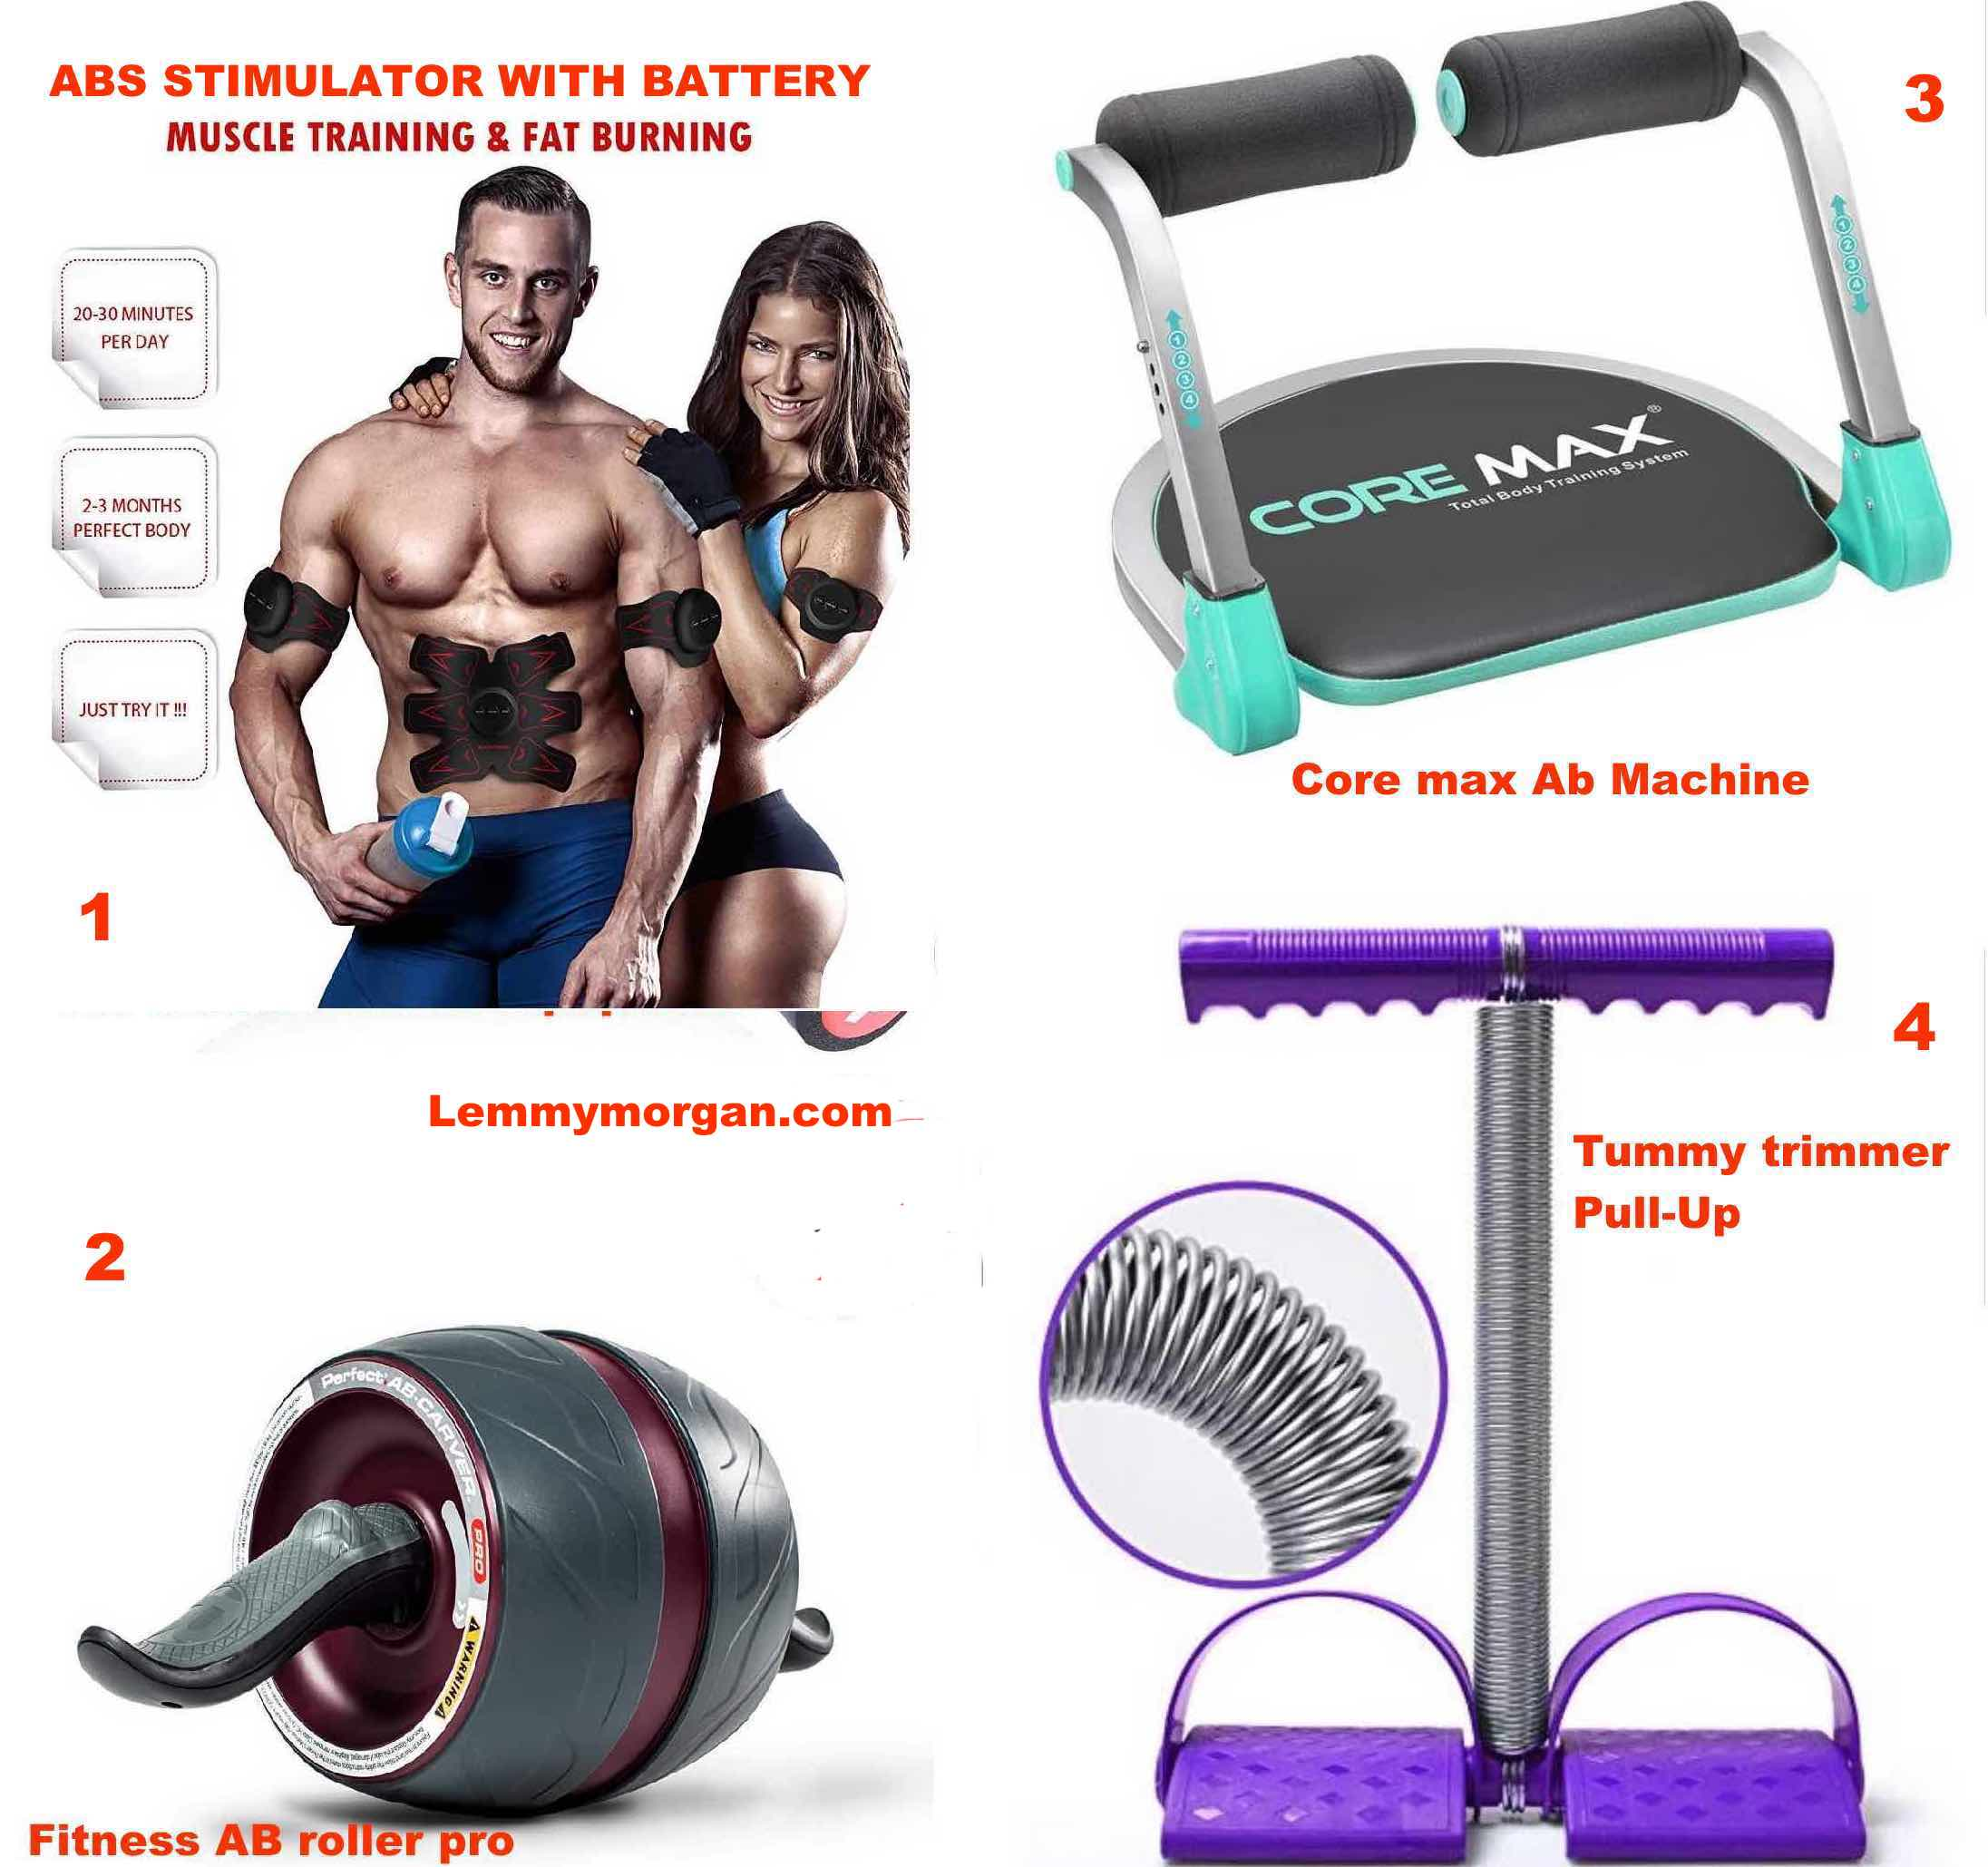 4 cheapest tummy/muscle tonners